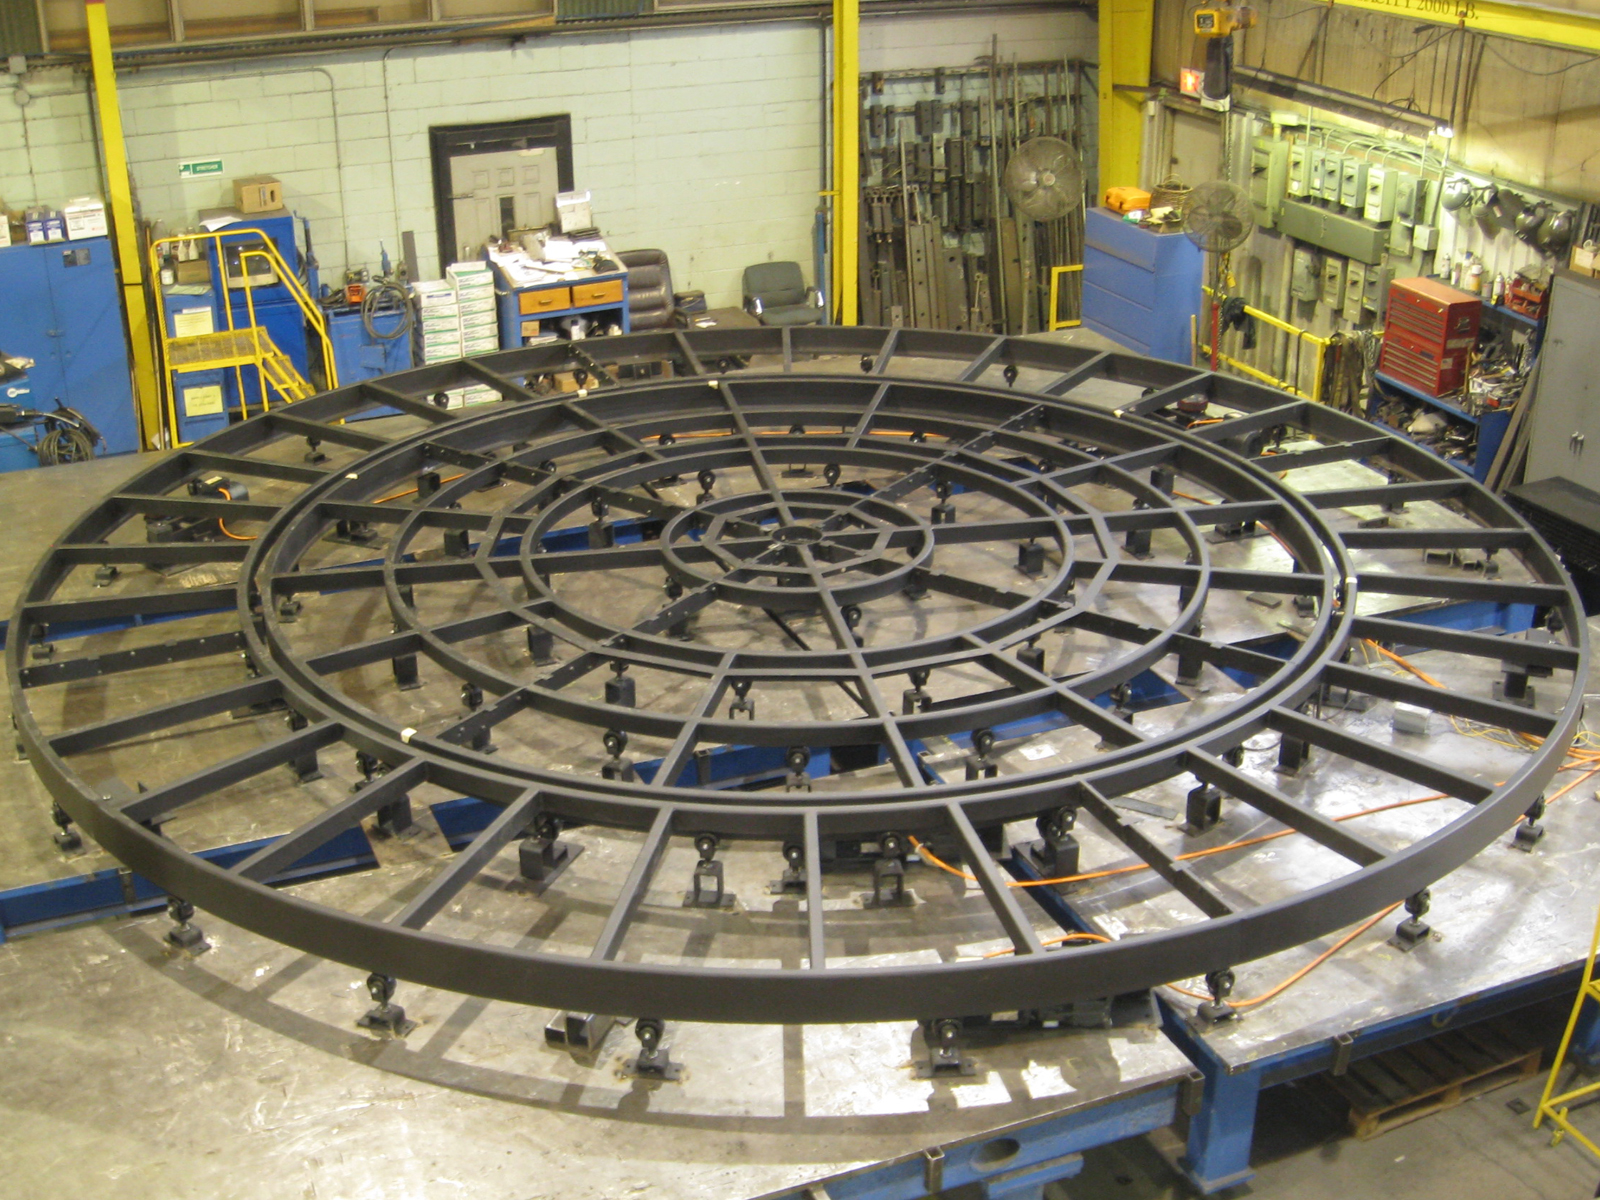 Circular Theater Stage with Rotating Rings